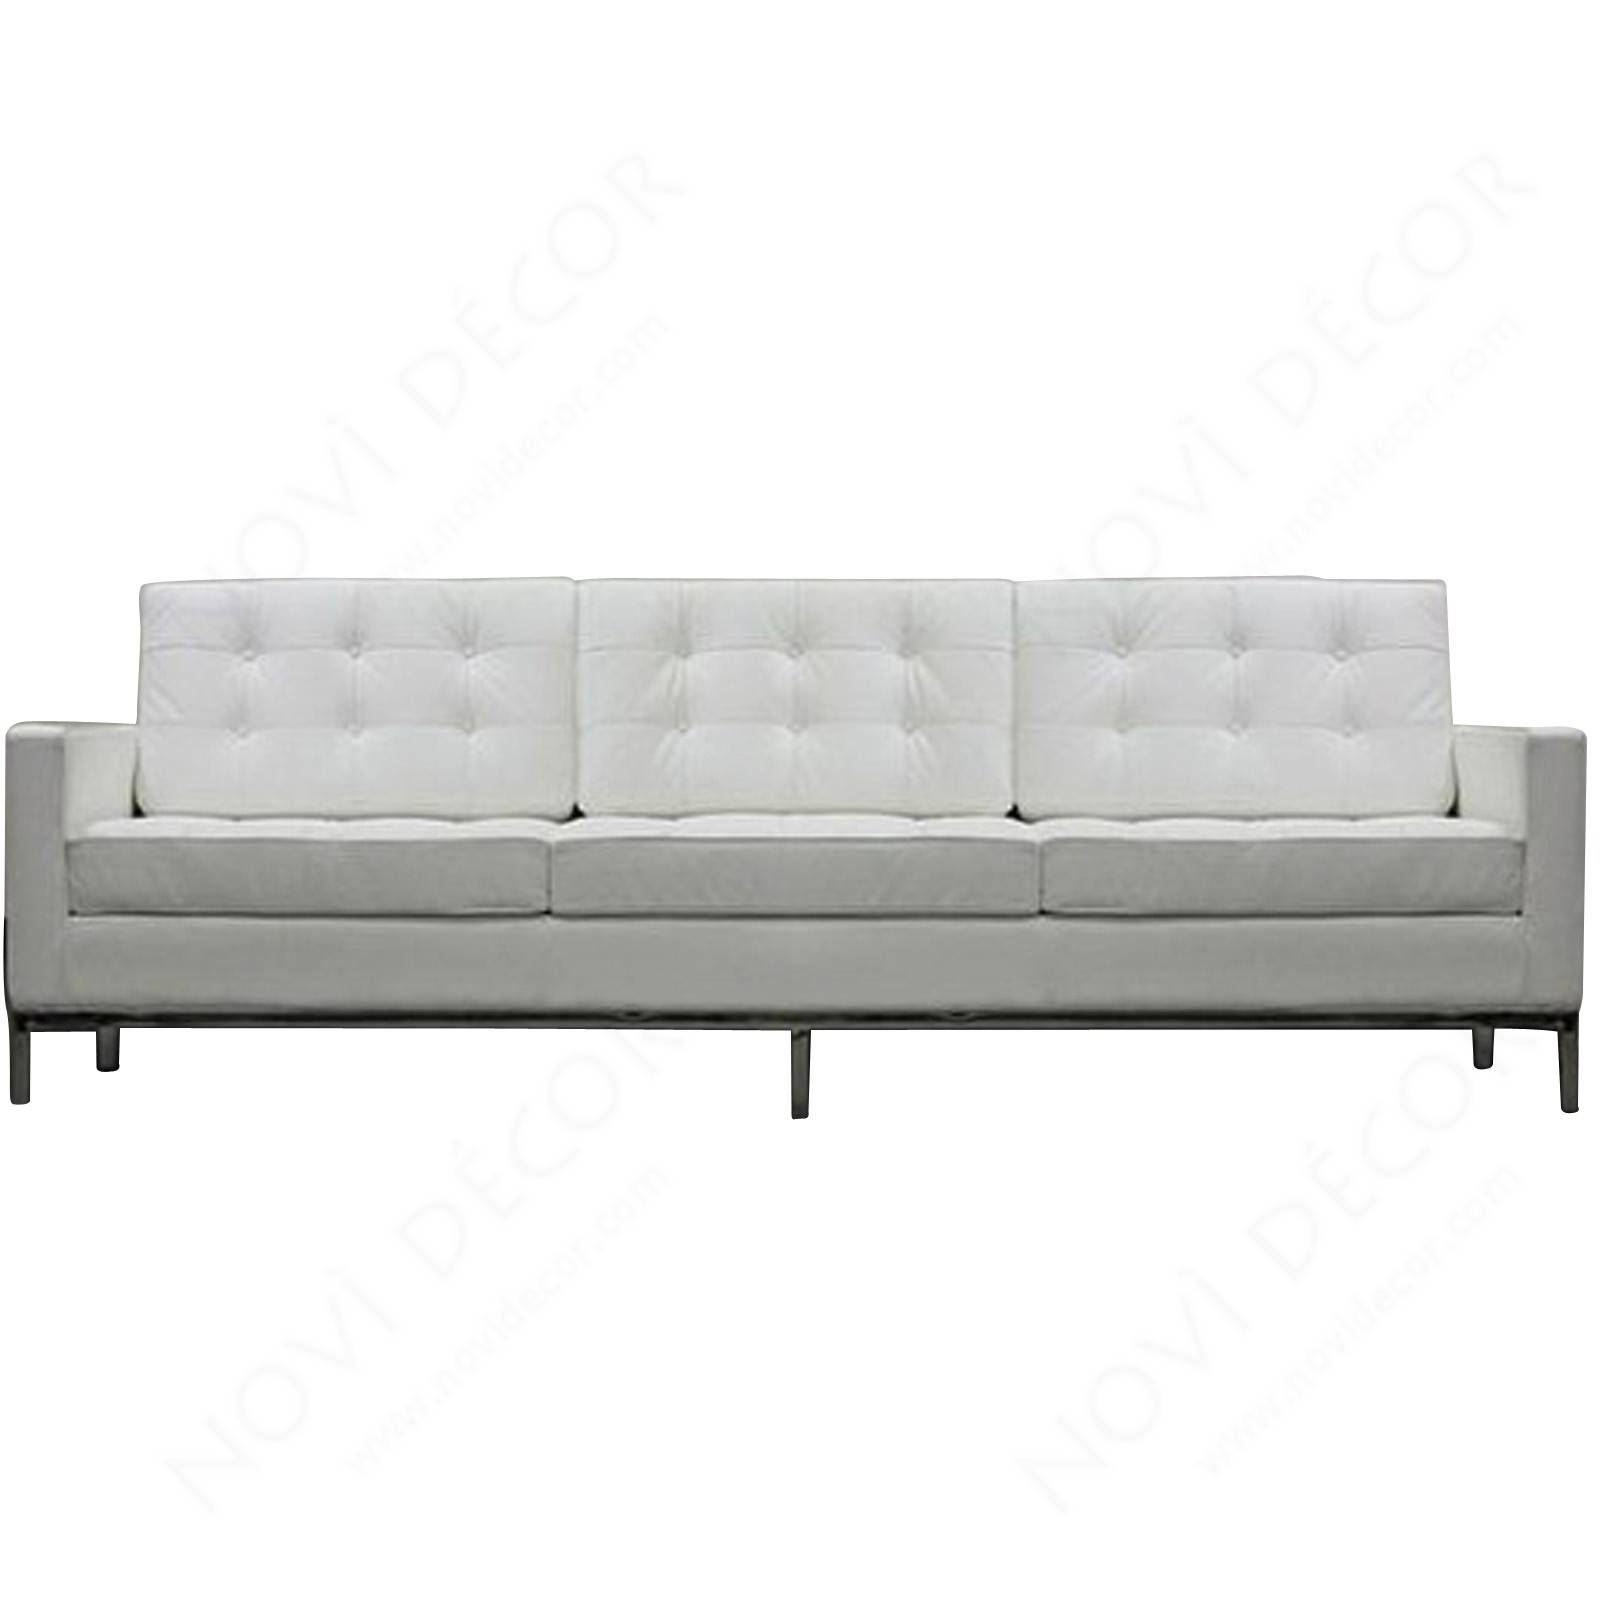 Florence Style Sofa (Multiple Colors) | Designer Reproduction intended for Florence Sofas (Image 19 of 30)